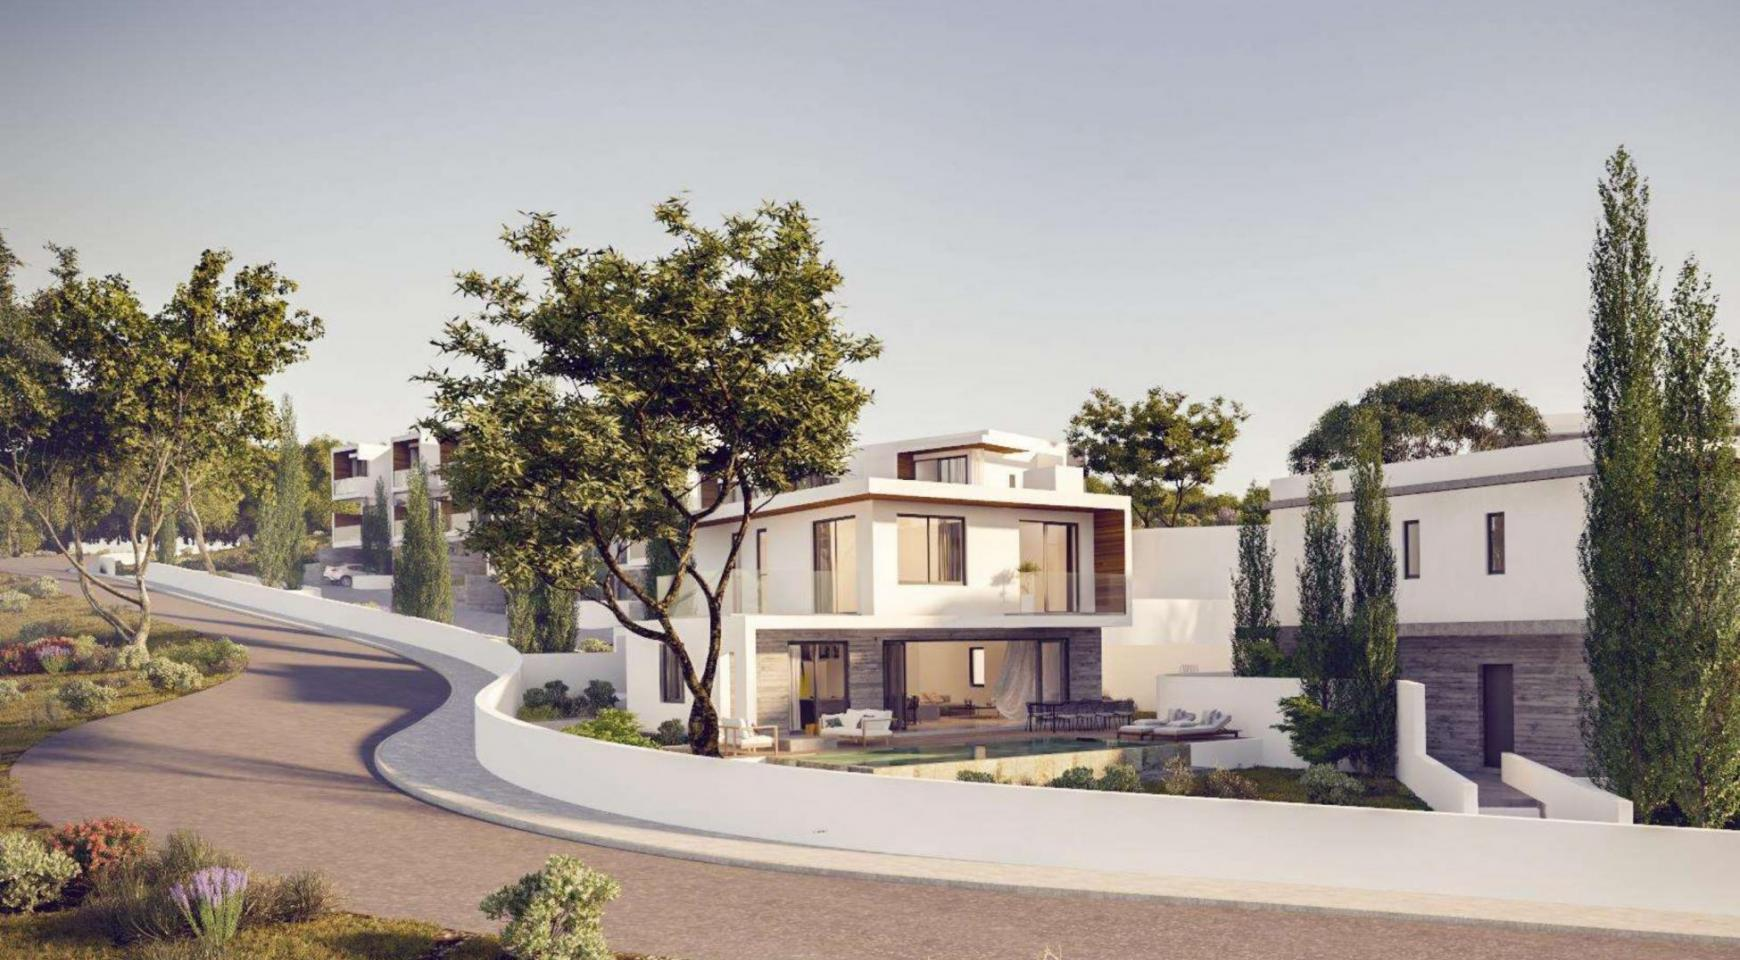 3 Bedroom Villa in a New Project in Agios Tychonas - 11